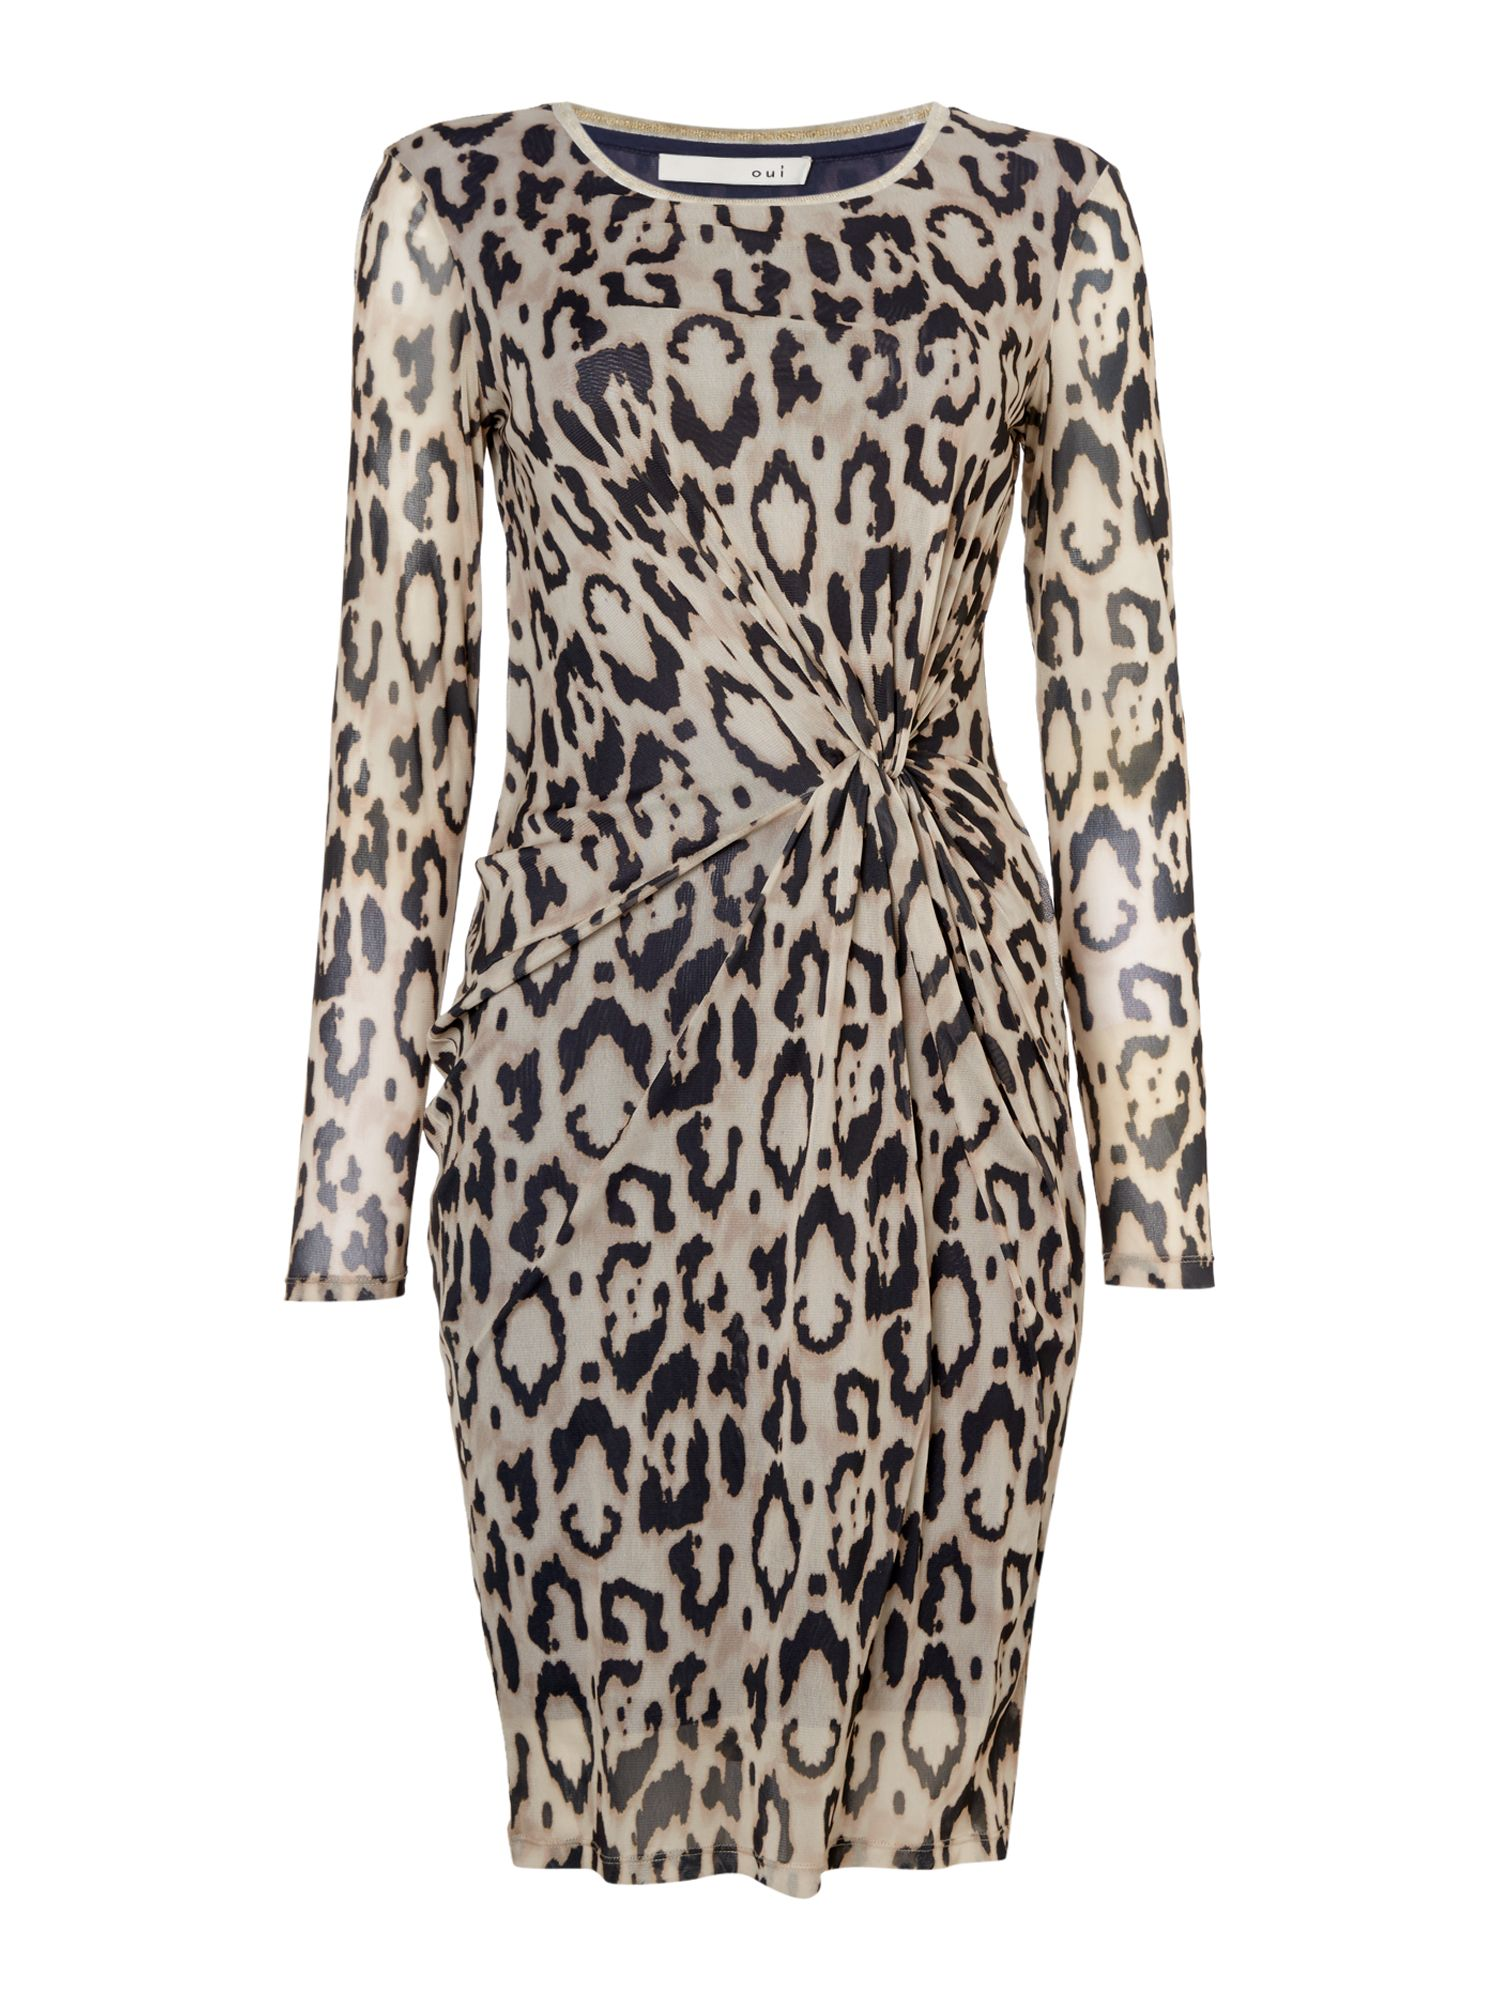 Oui Leopard print bodycon dress, Multi-Coloured